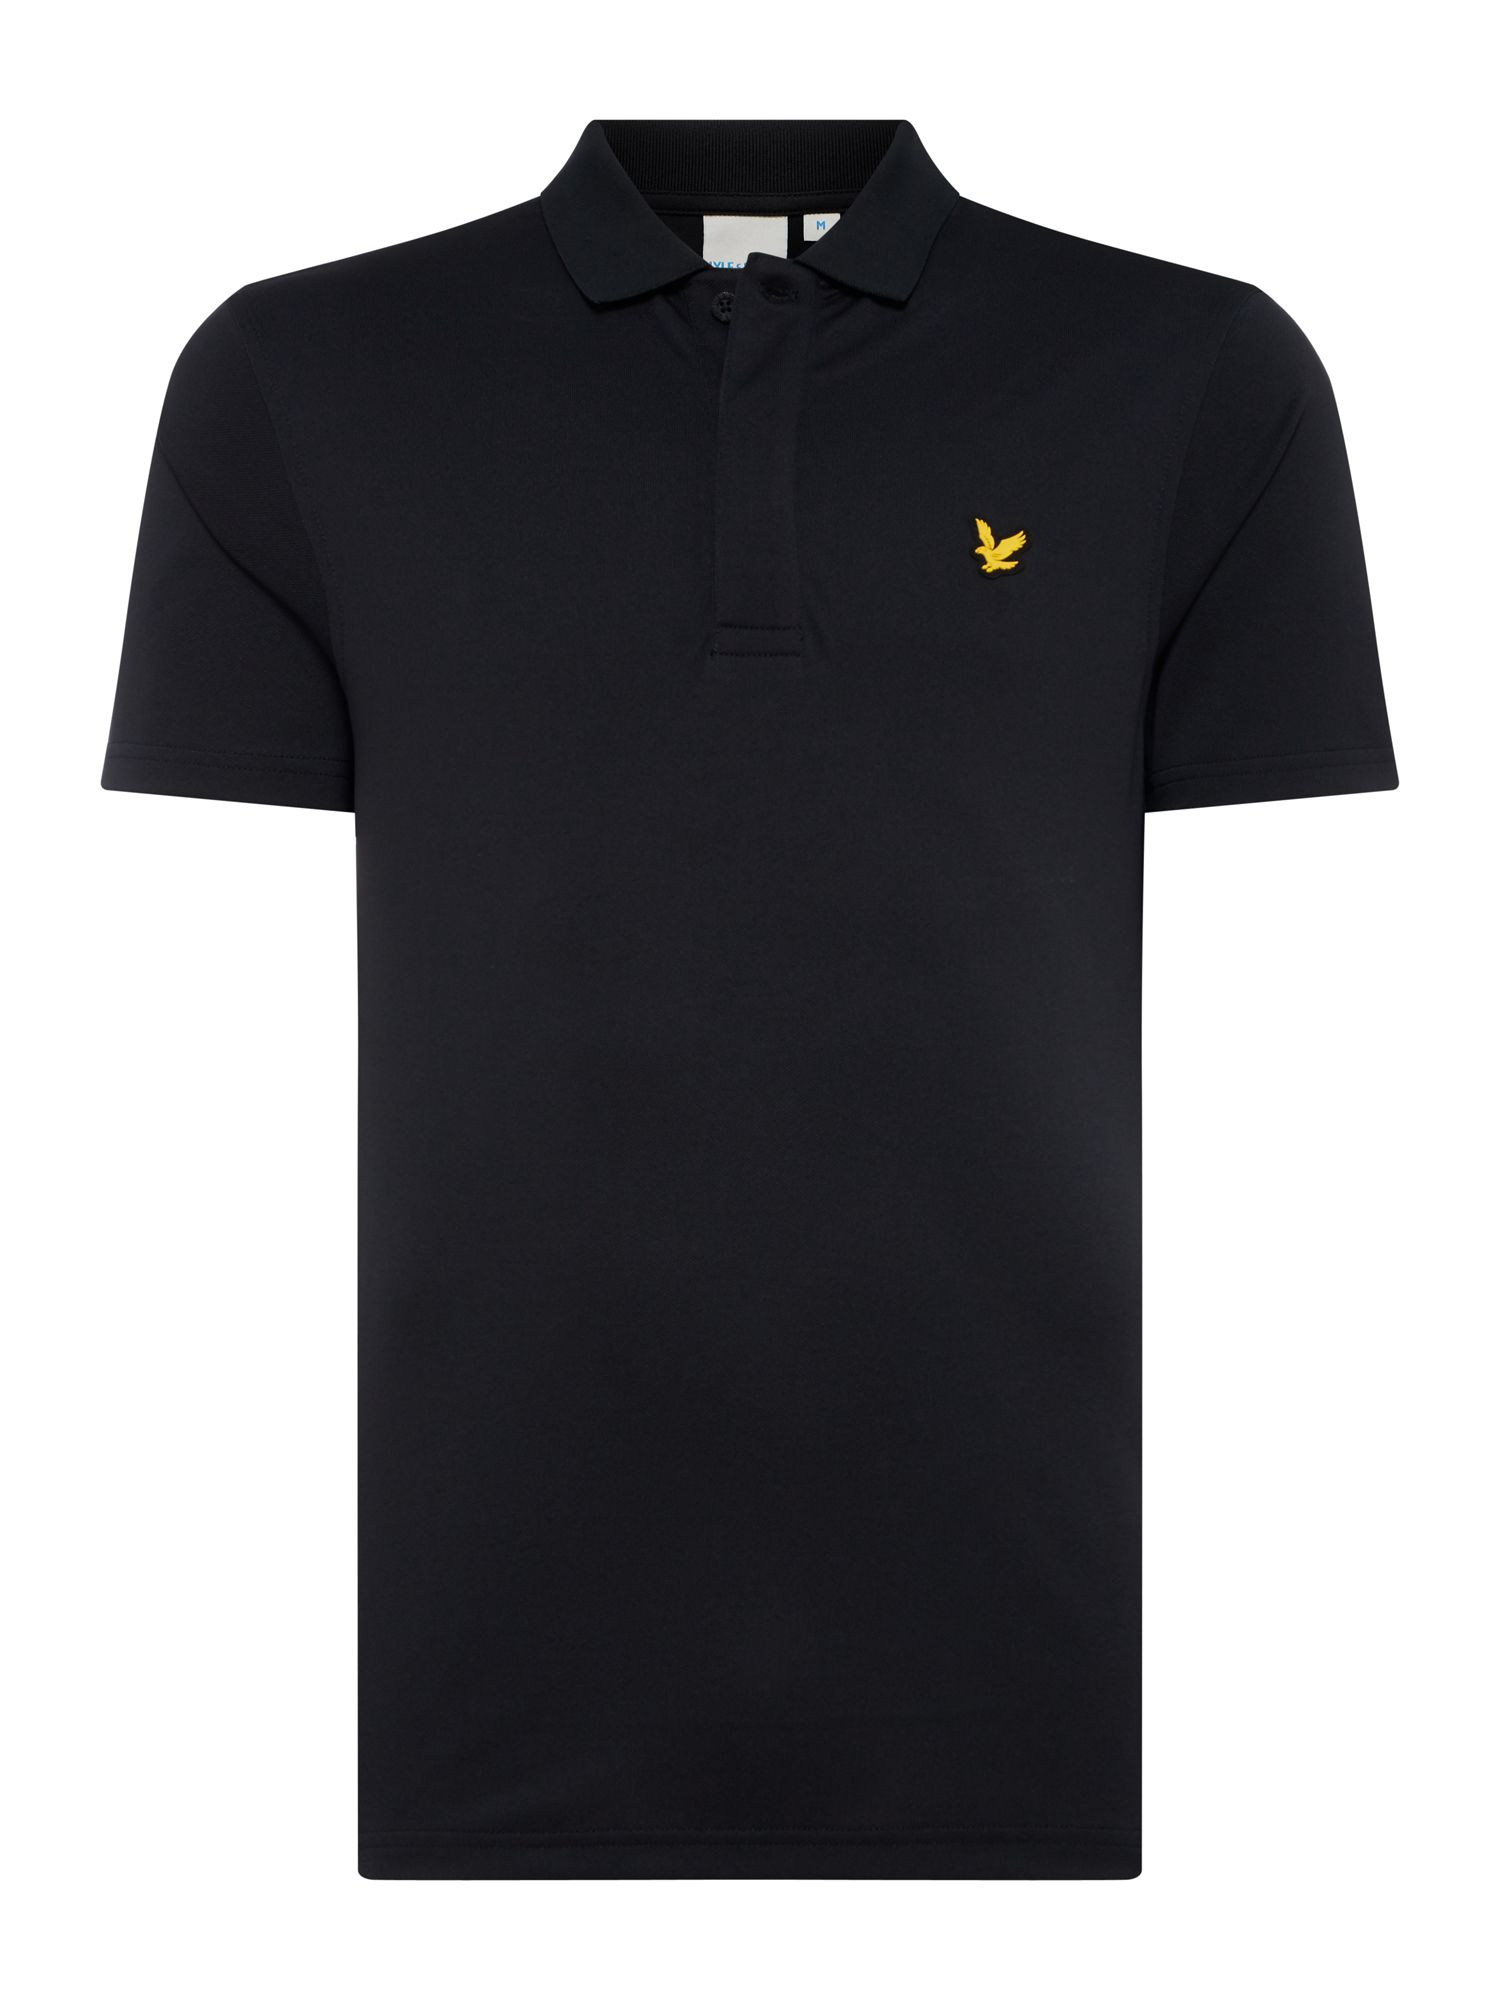 Men's Lyle and Scott Short sleeve sports polo, Black